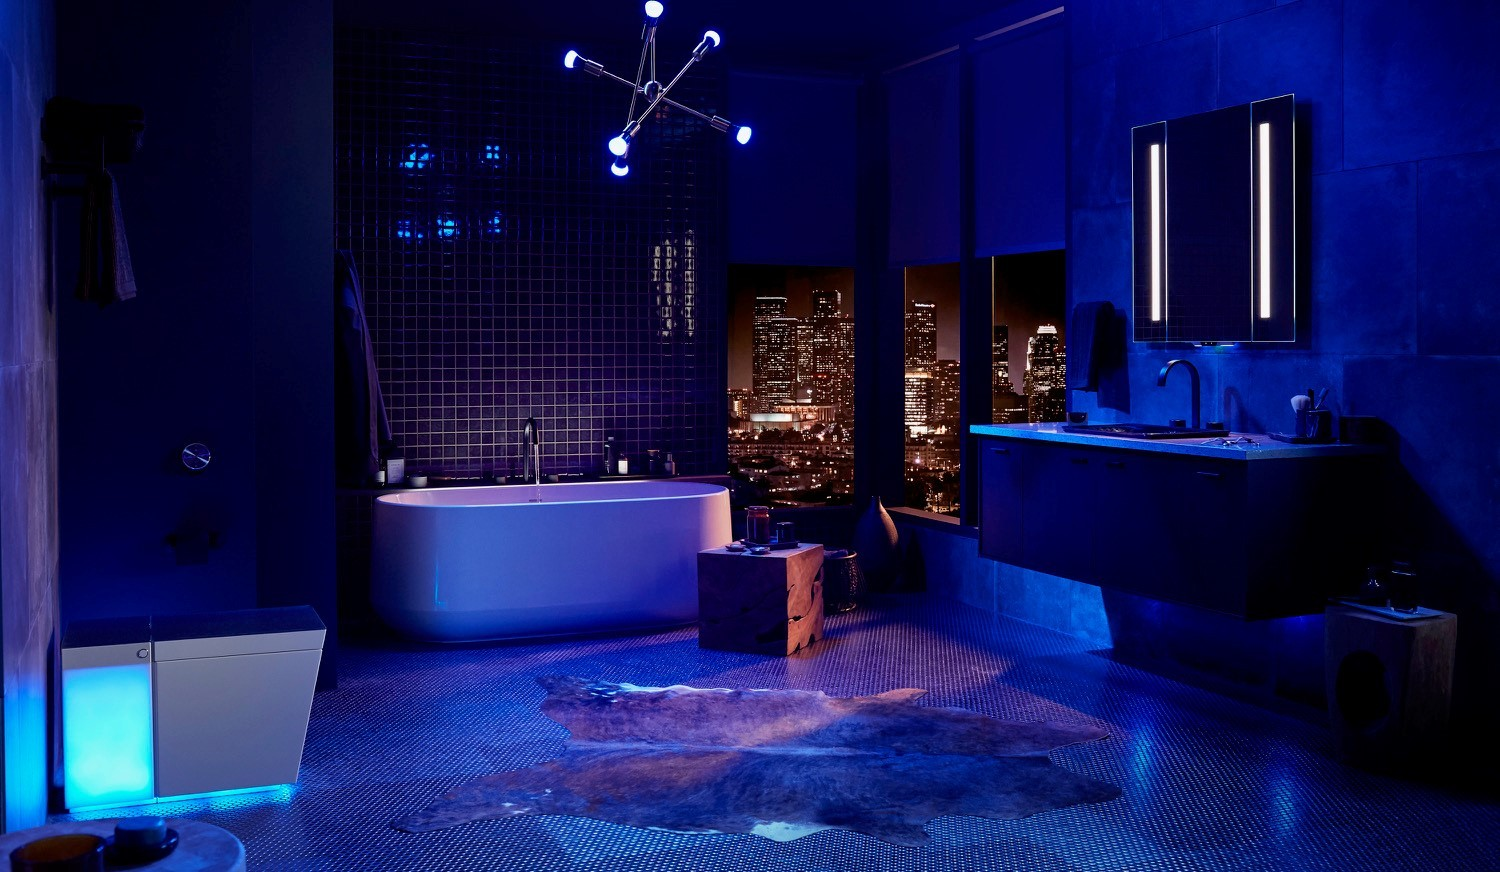 The Numi Konnect 2.0 from Kohler